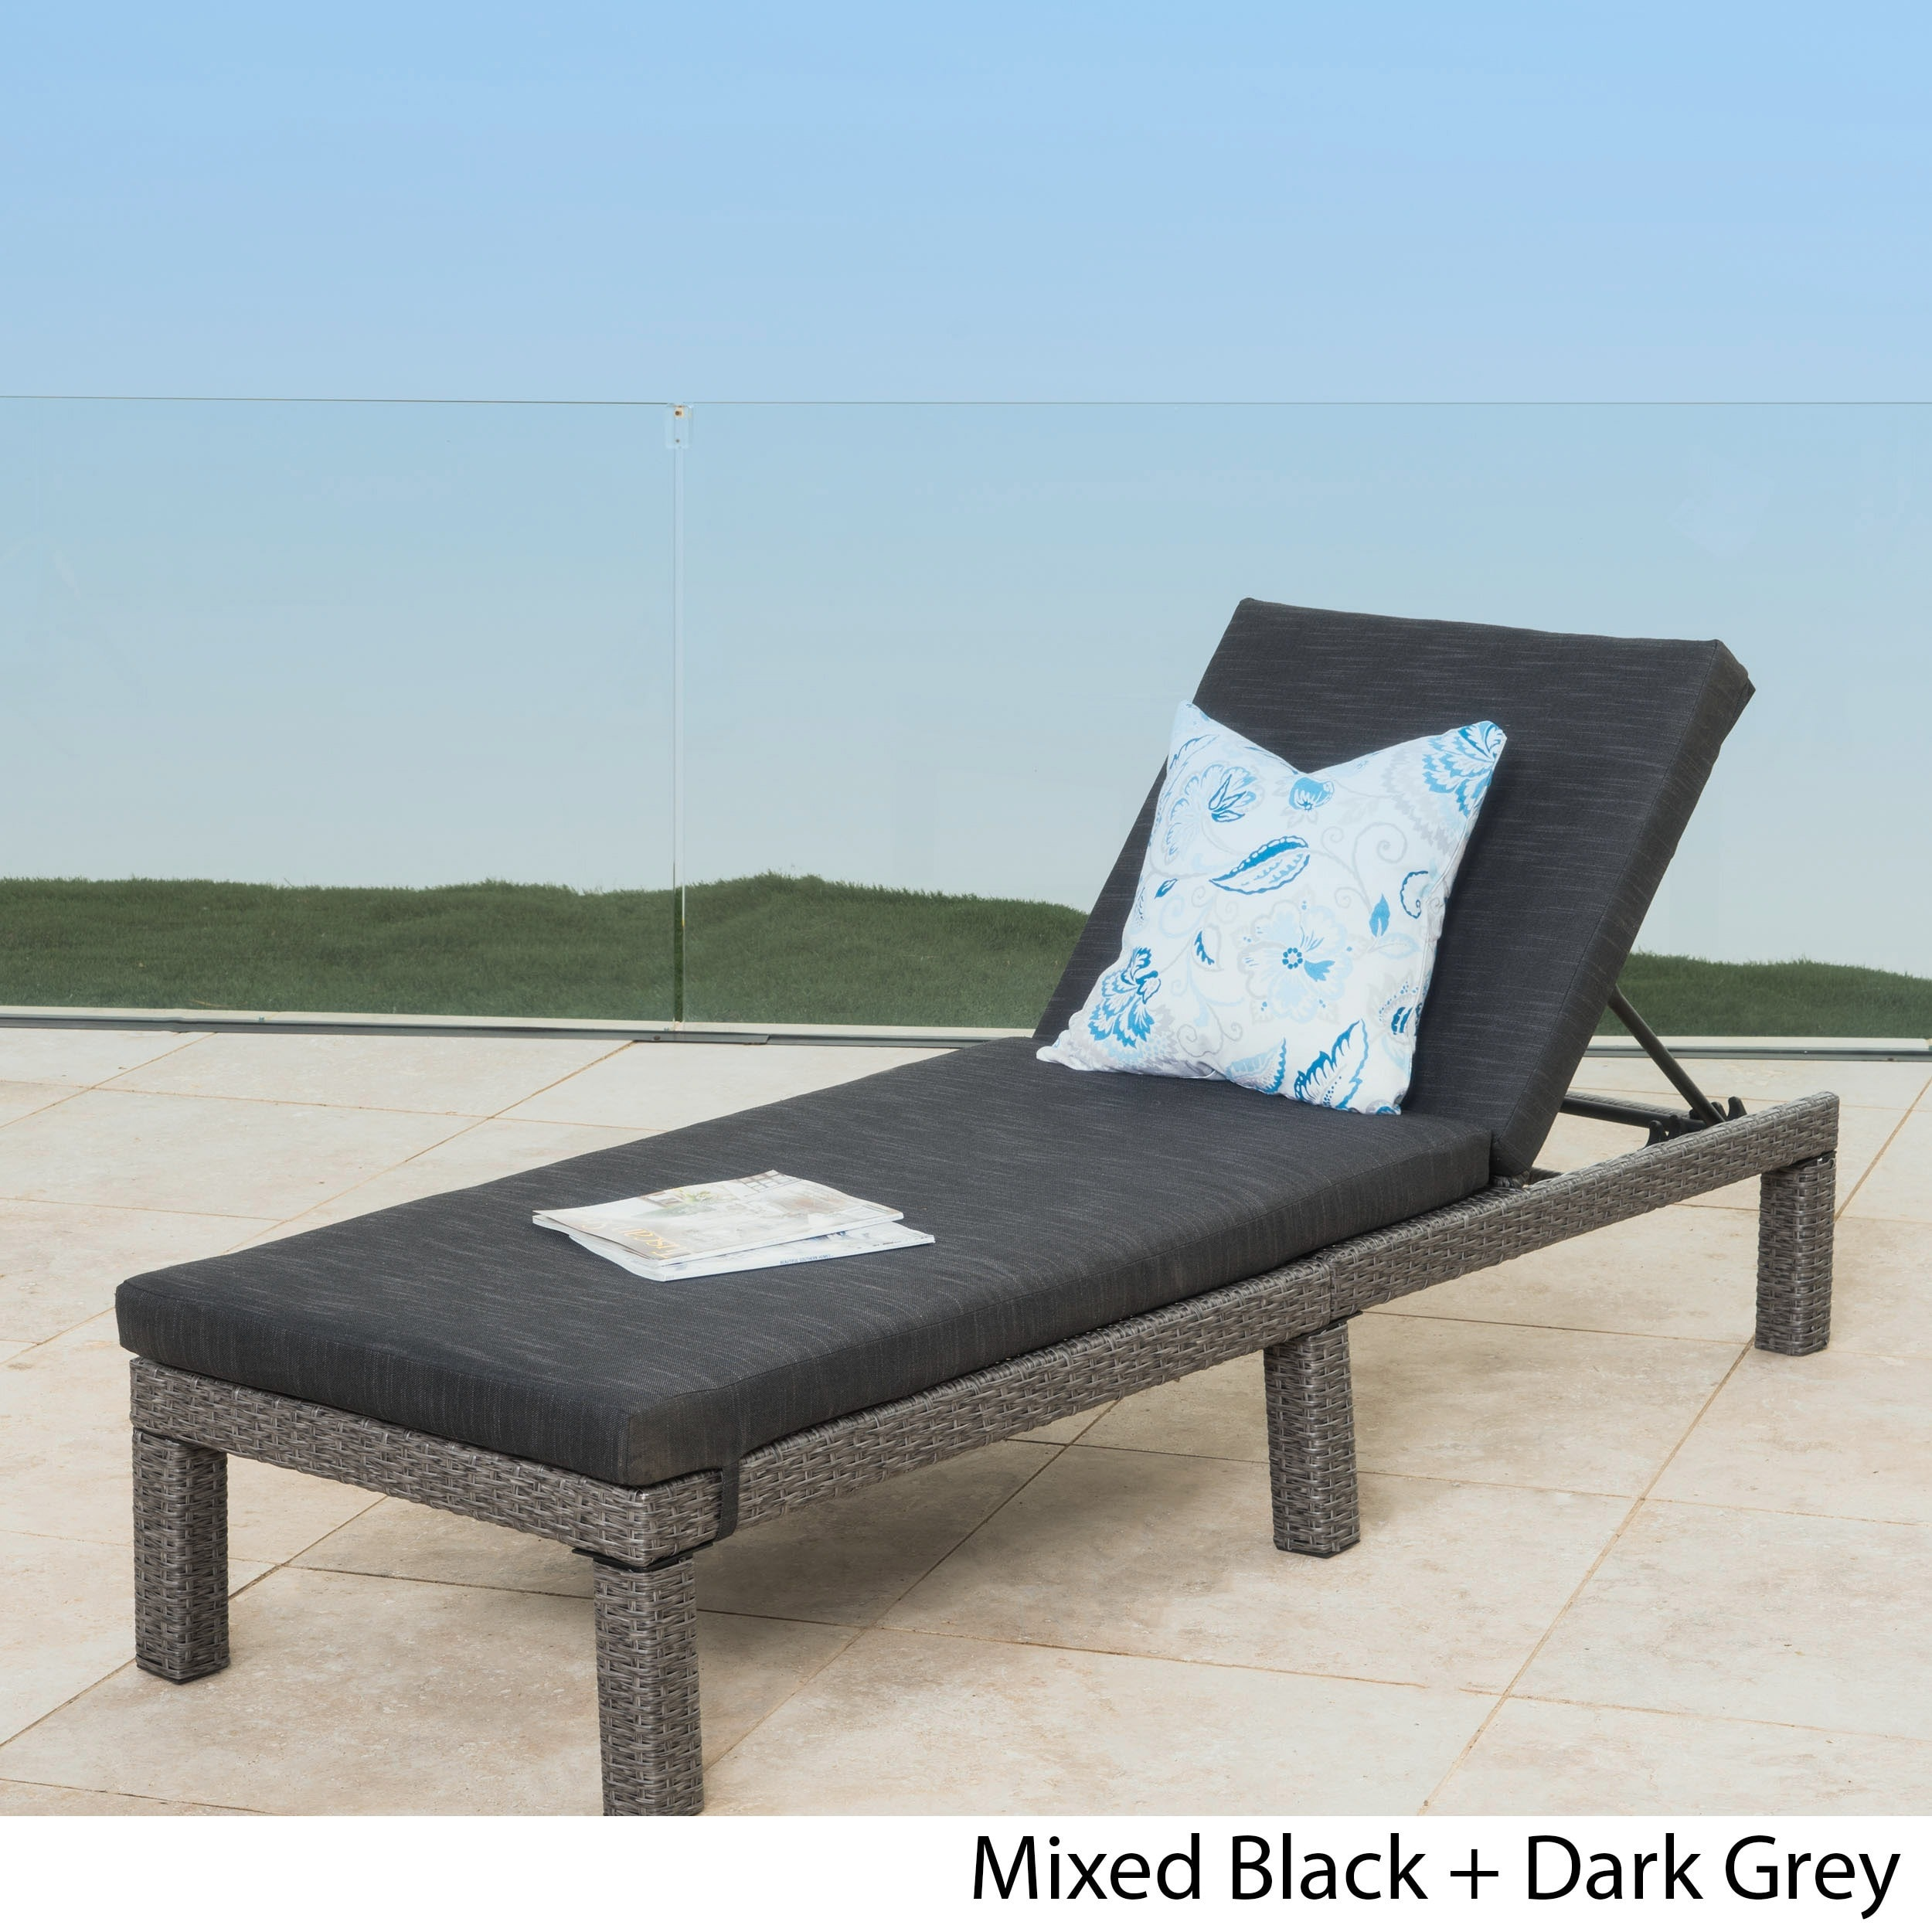 Puerta Outdoor Adjustable Wicker Chaise Lounge with Cushi...